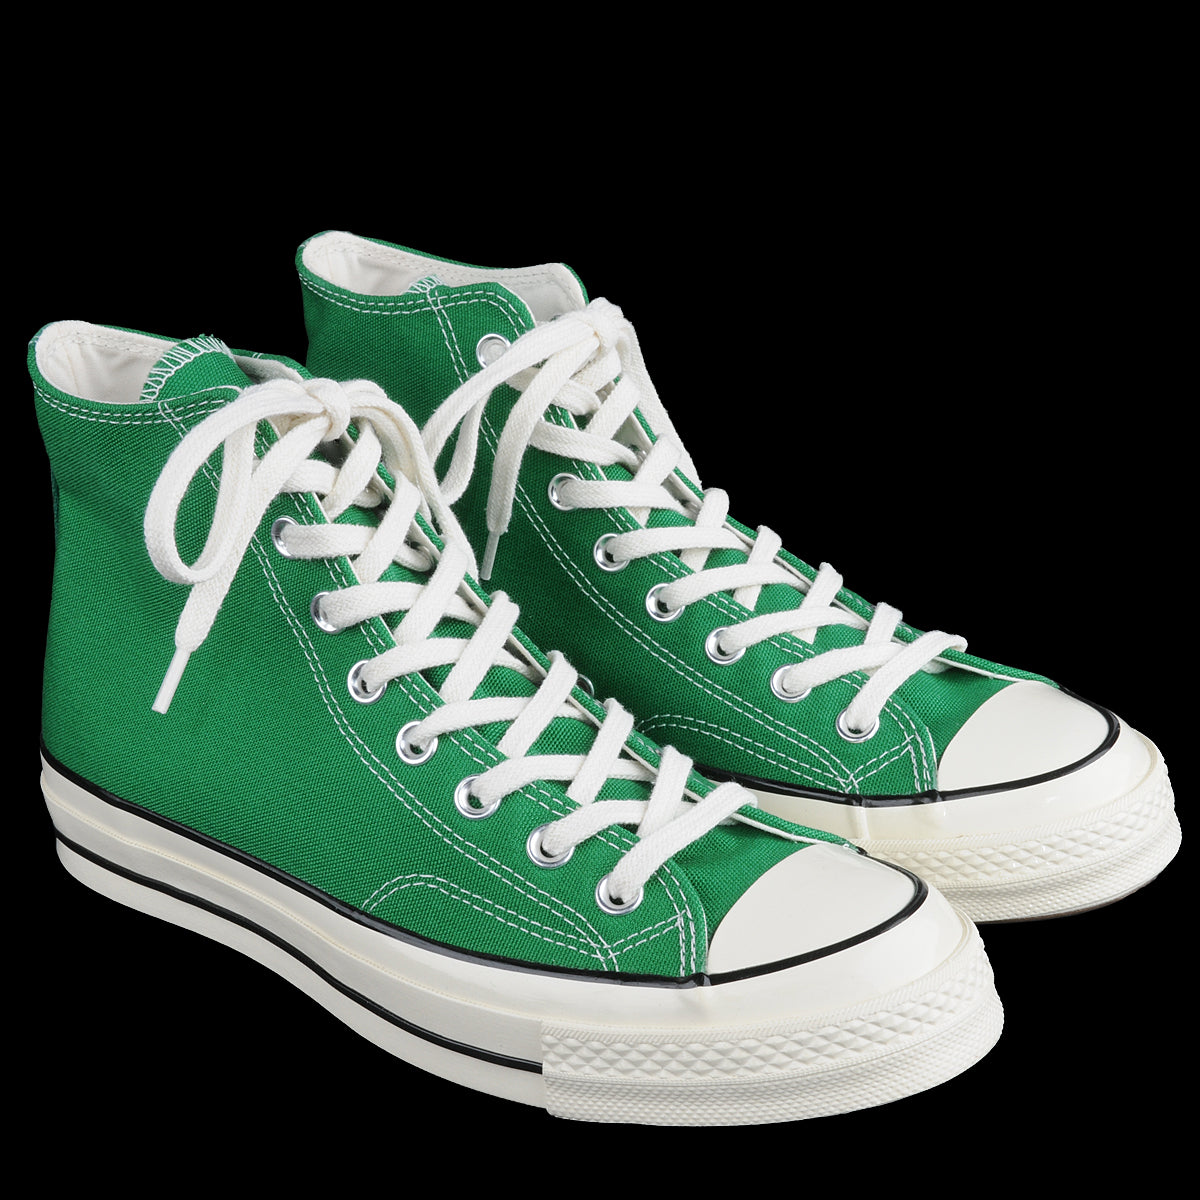 a620c96d34d6 Converse - Chuck Taylor All Star 70 Hi in Green - UNIONMADE